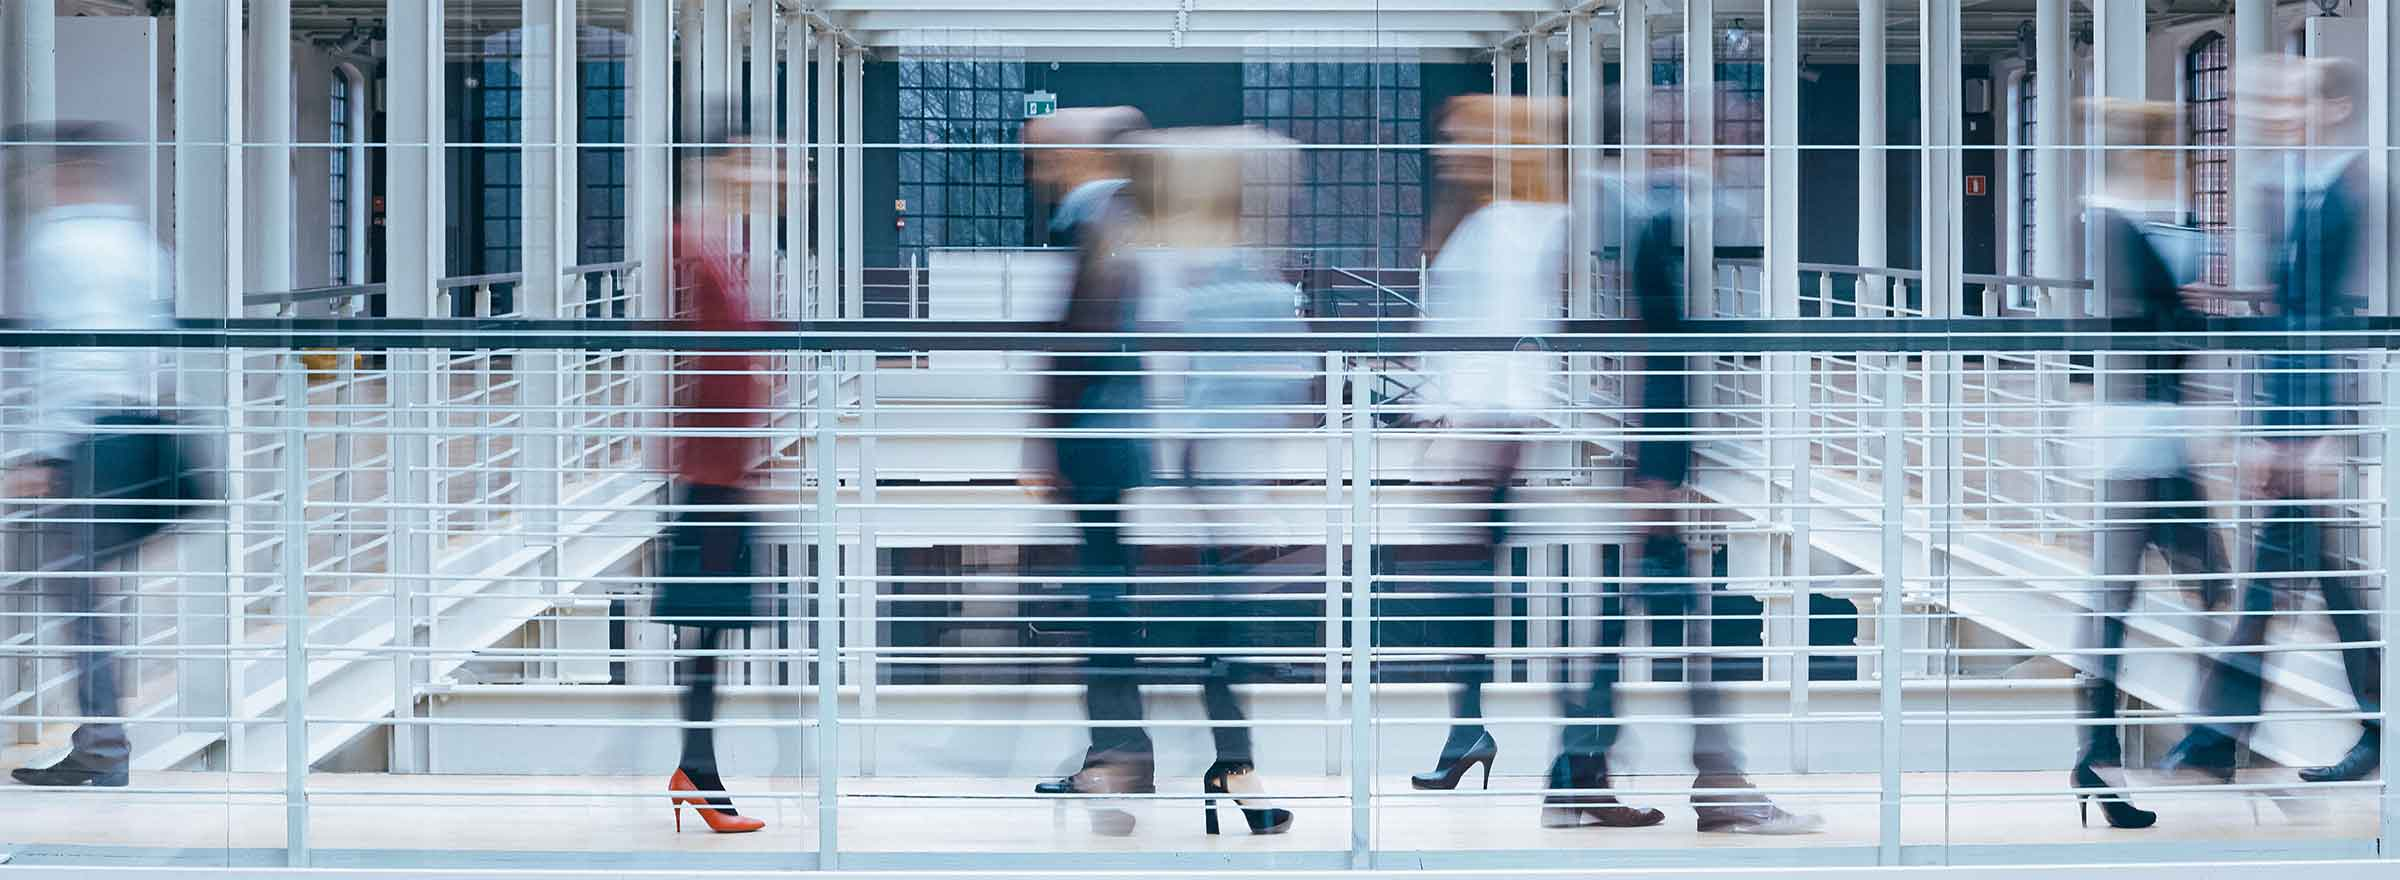 blurred images of people crossing a walkway over an atrium